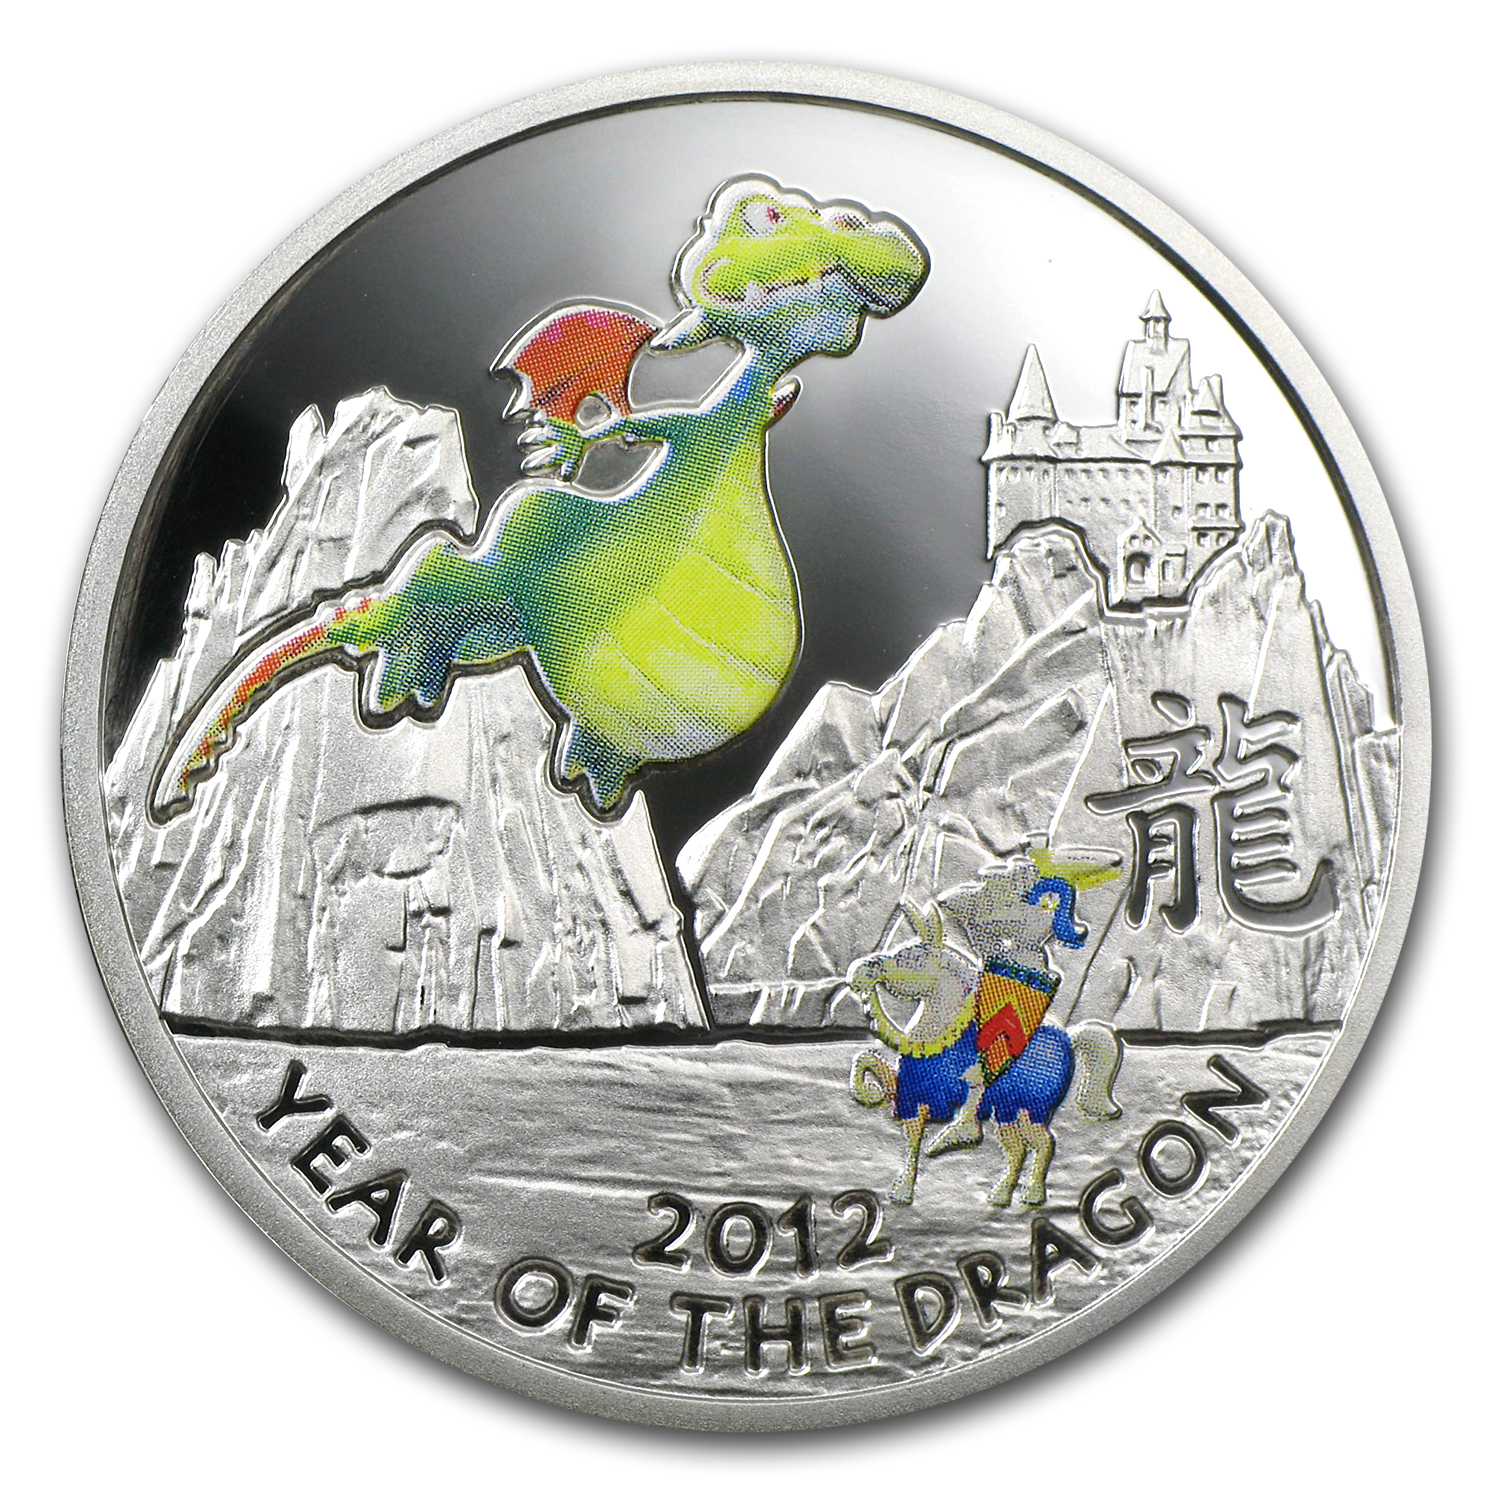 2011 Niue Proof Silver 2012 Year of the Dragon Fairy Tail Dragon